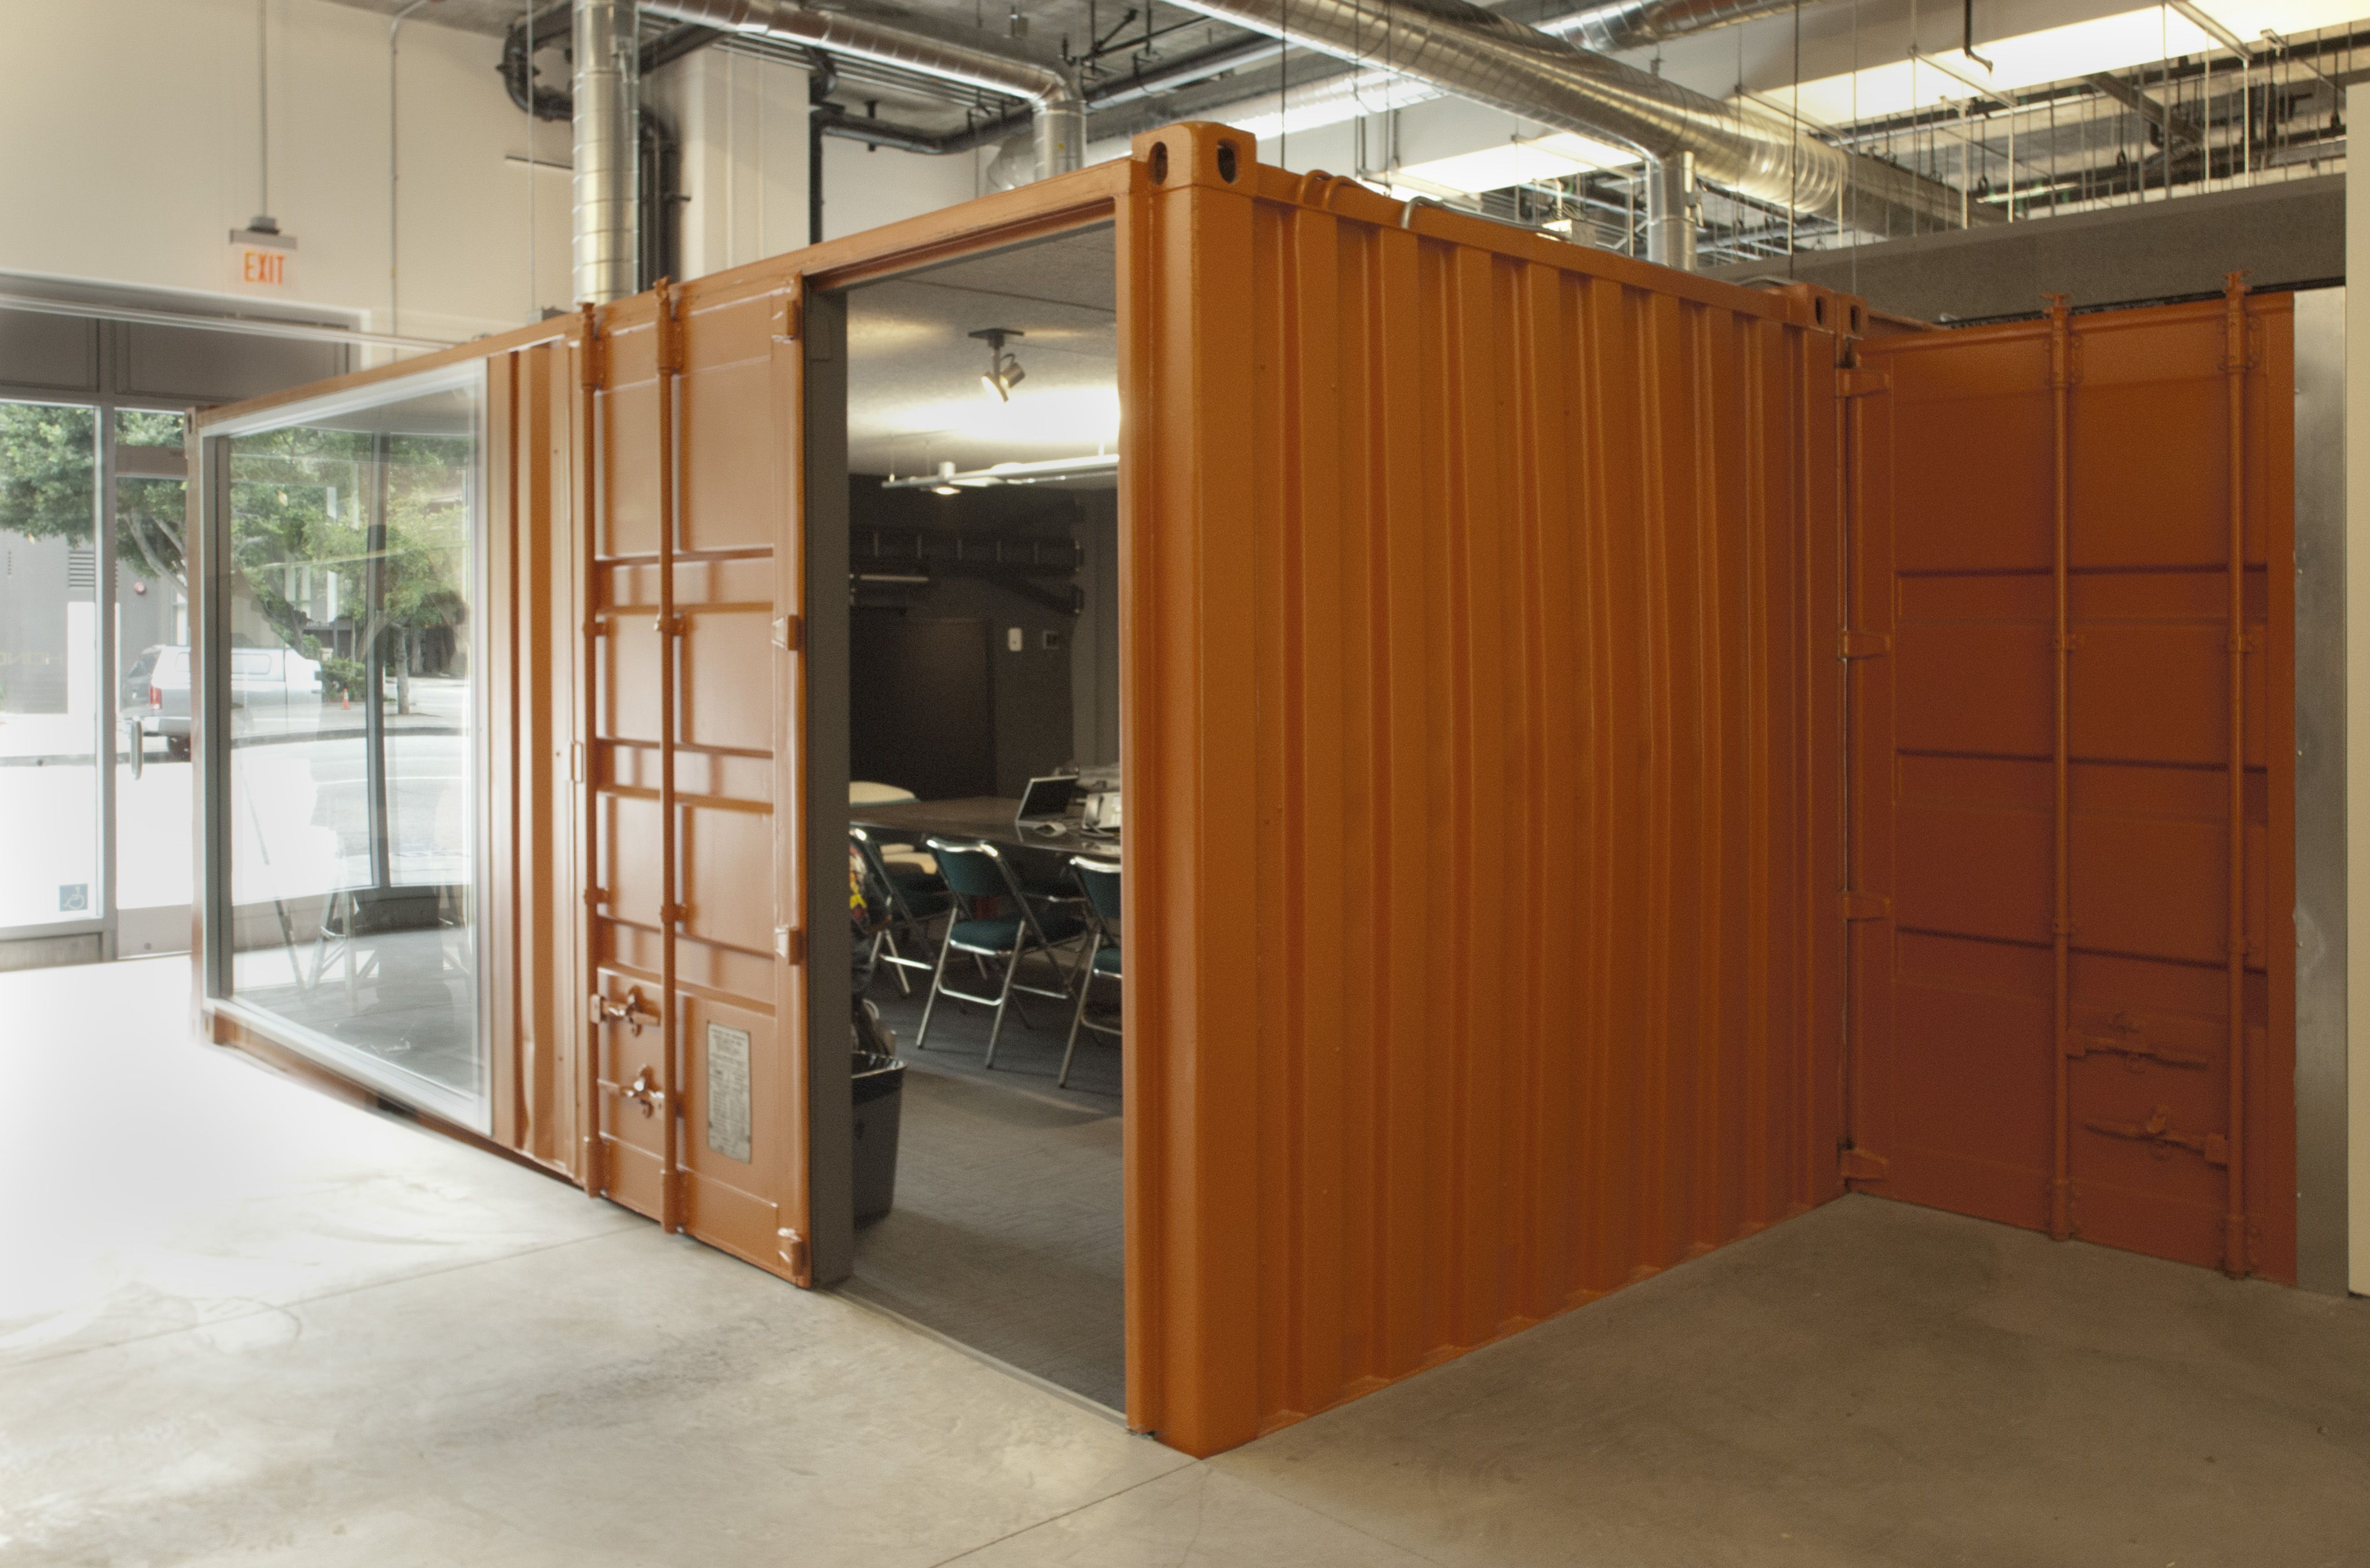 Overall W Slidingdoor Jpg 4 090 2 706 Pixels Design Shipping Container House